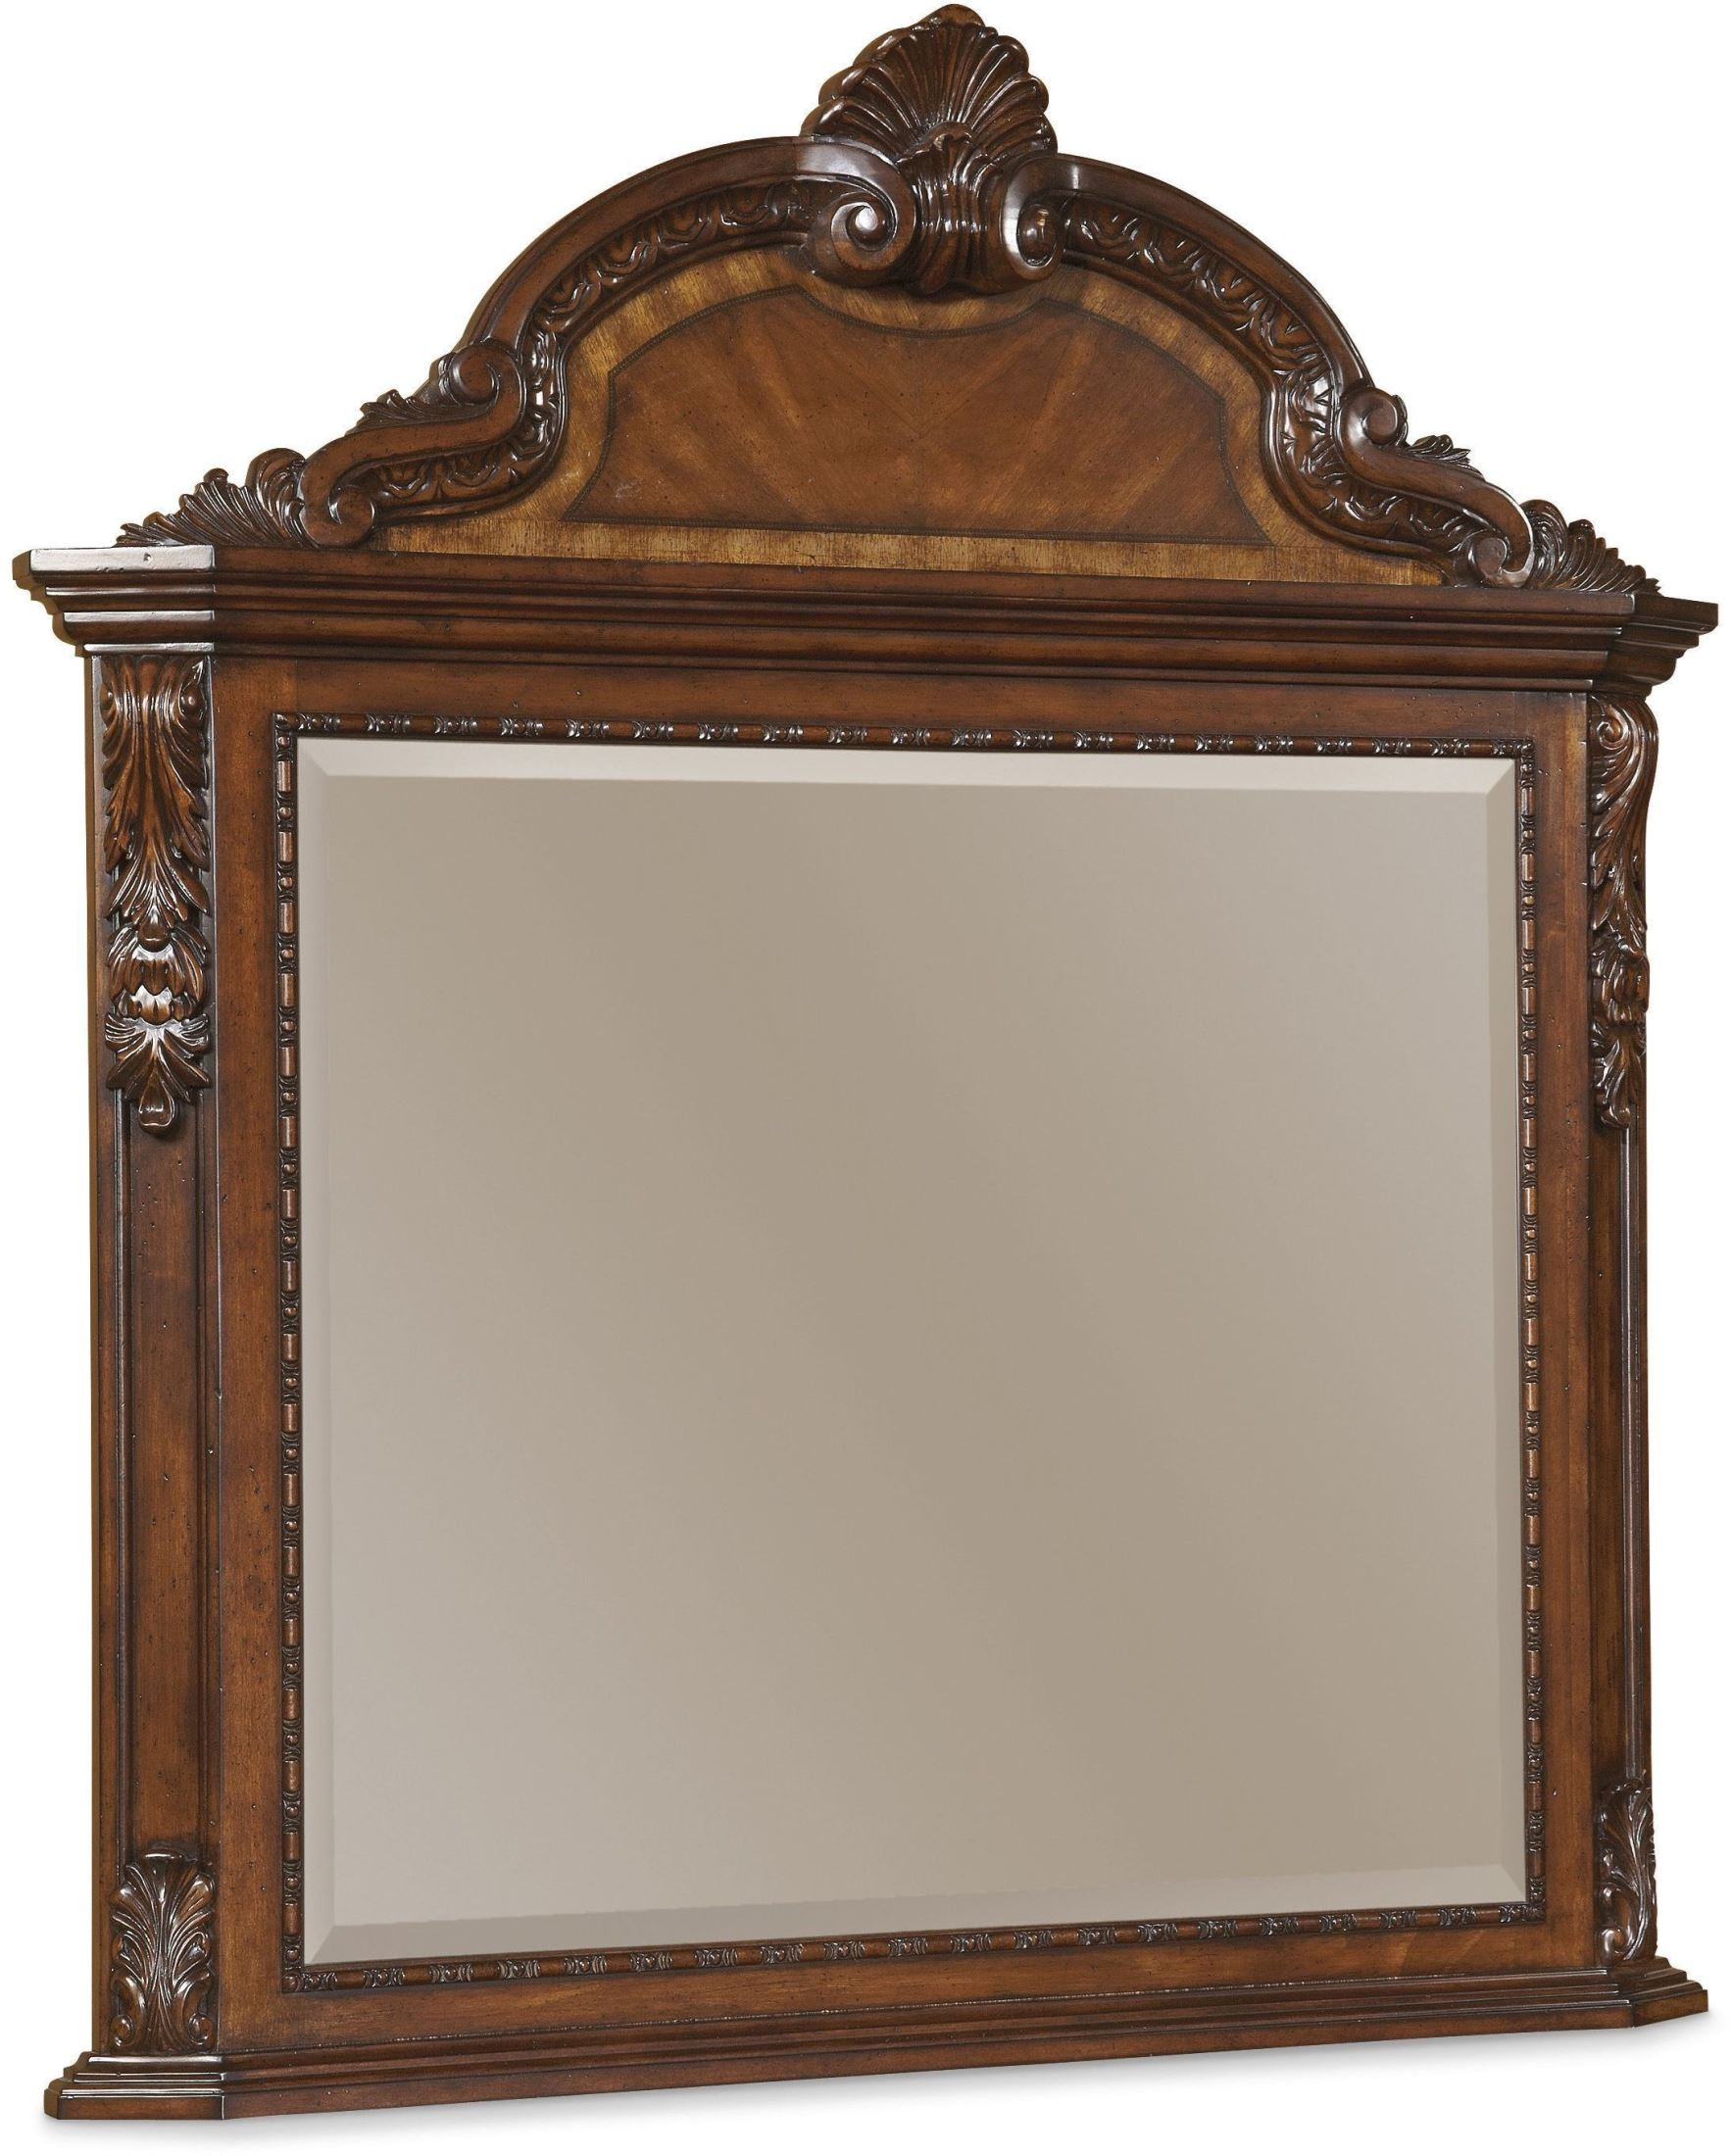 Old World Furnishings: Old World Landscape Mirror From ART (143121-2606